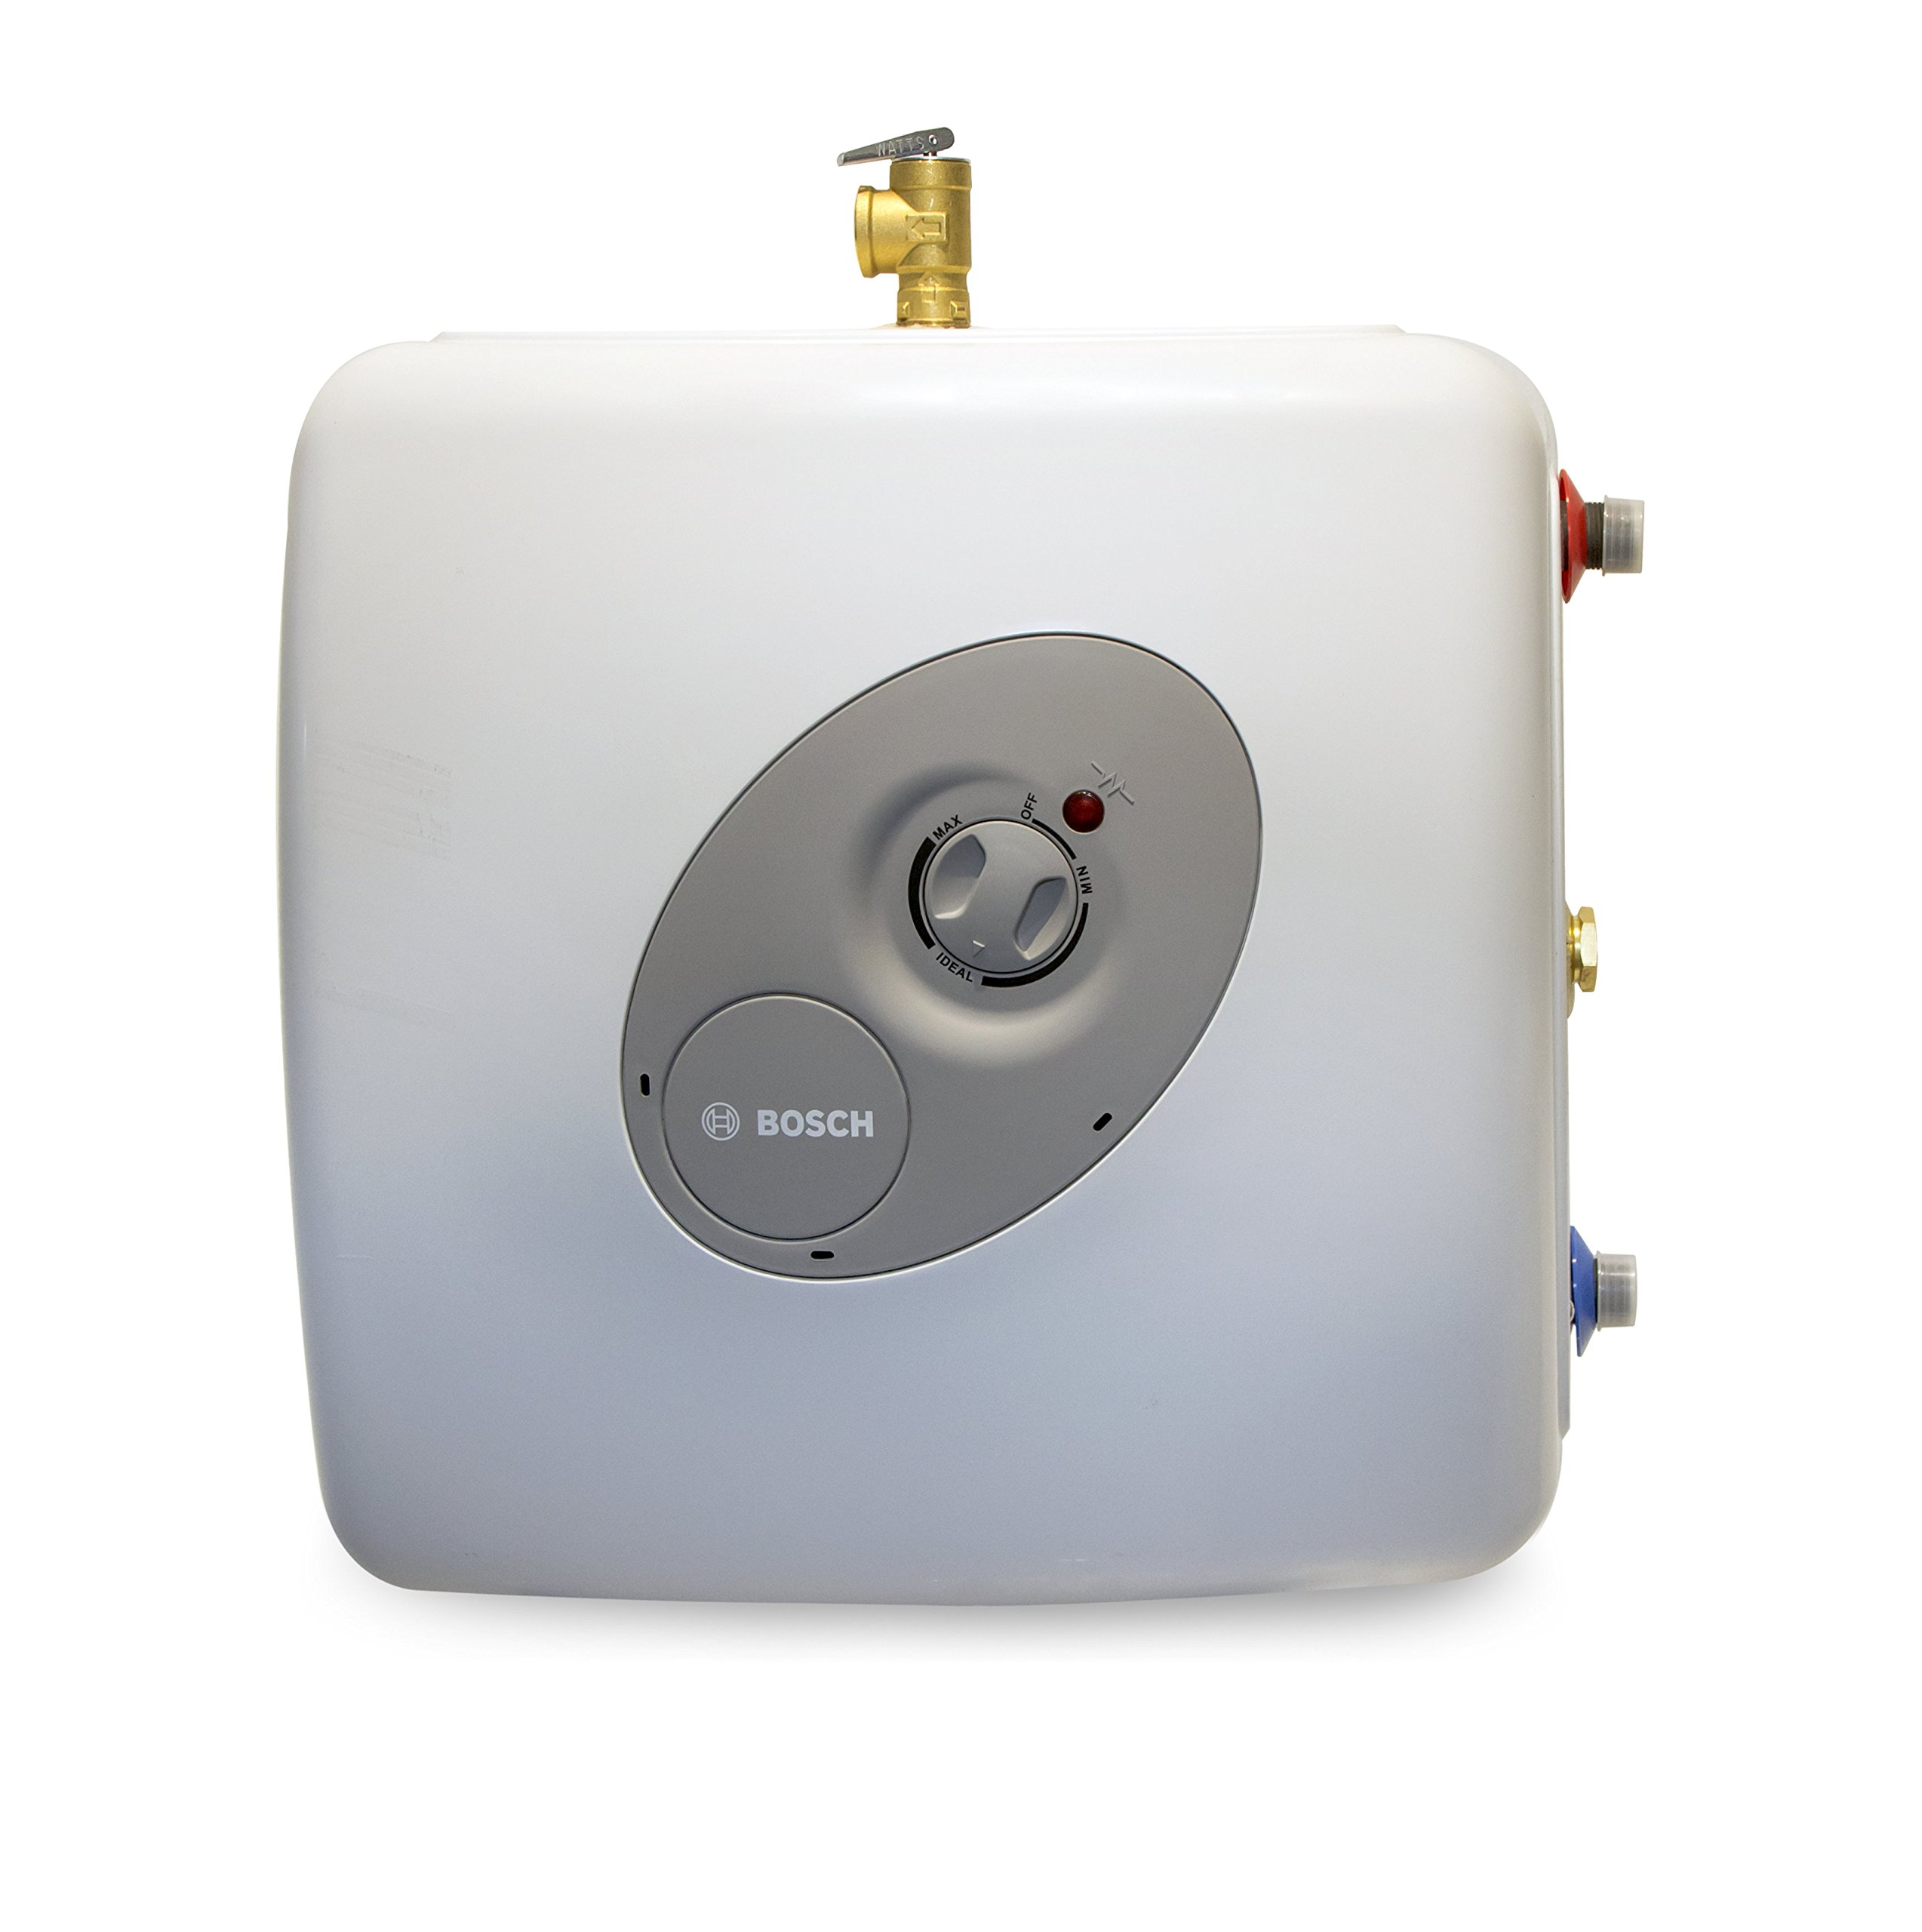 Best Mini Tank Water Heater